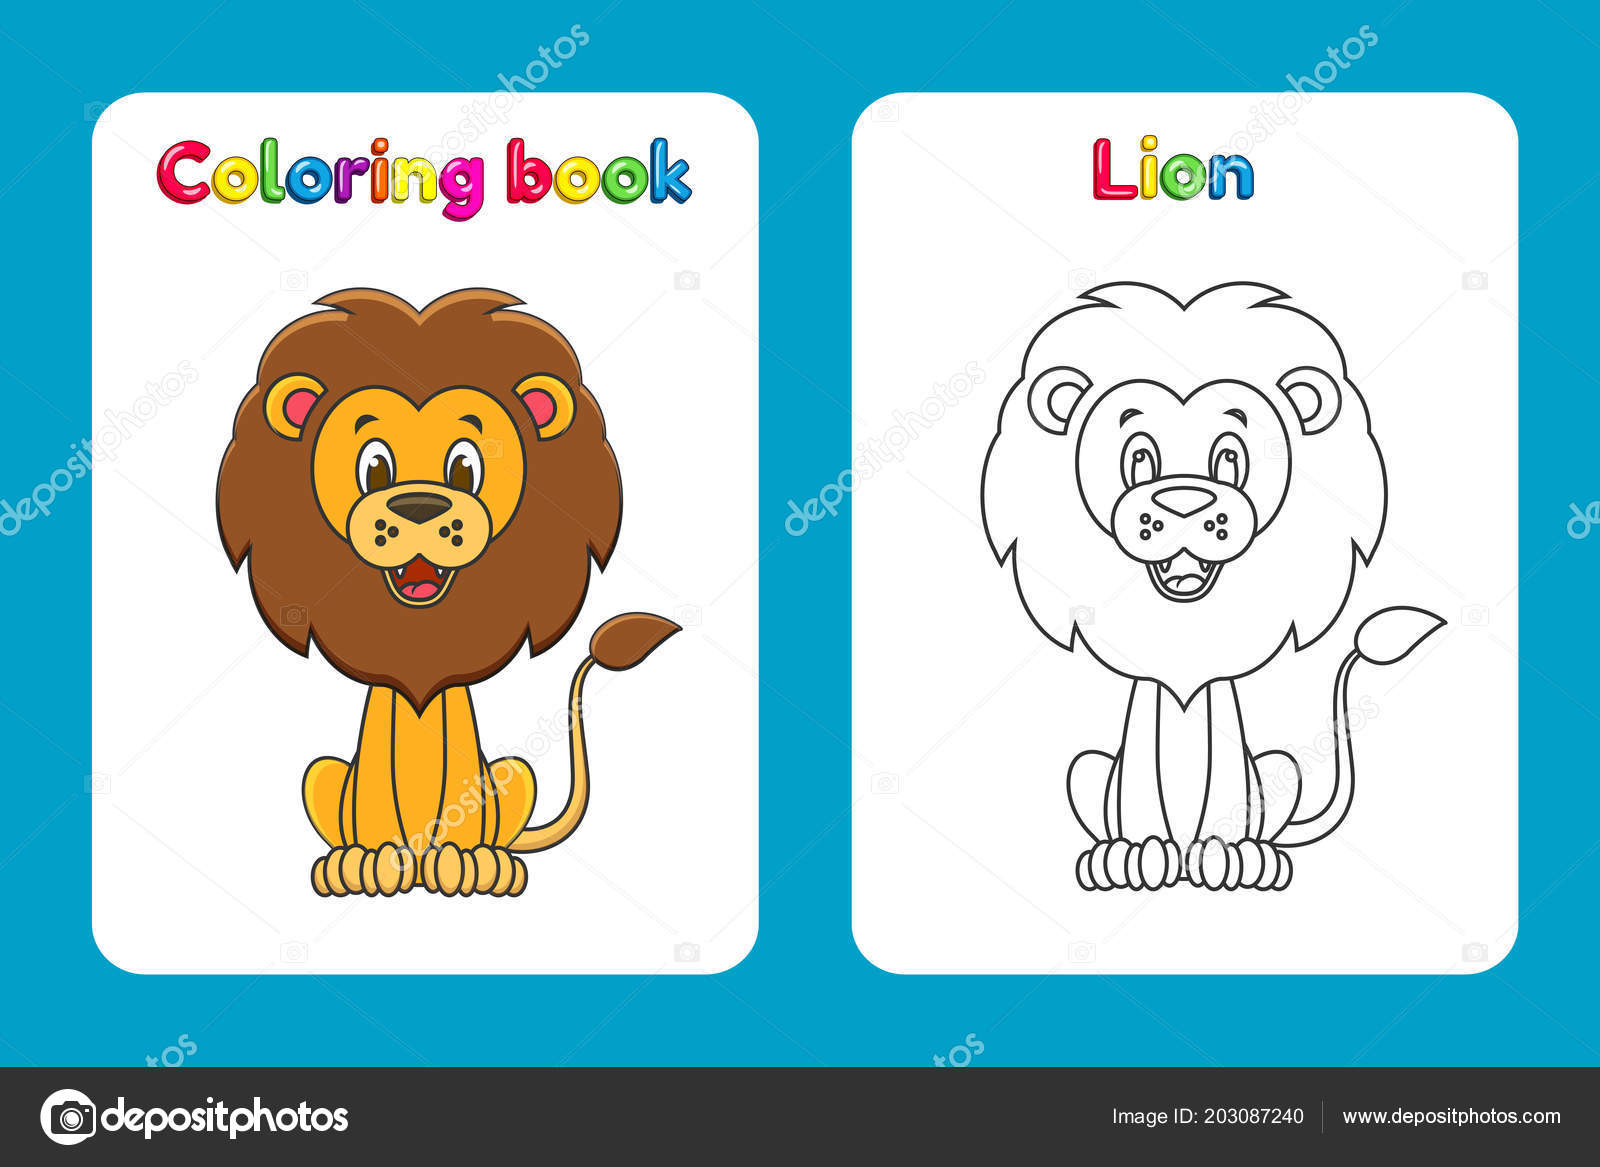 Coloring Book Page For Children With Colorful Lion And Sketch